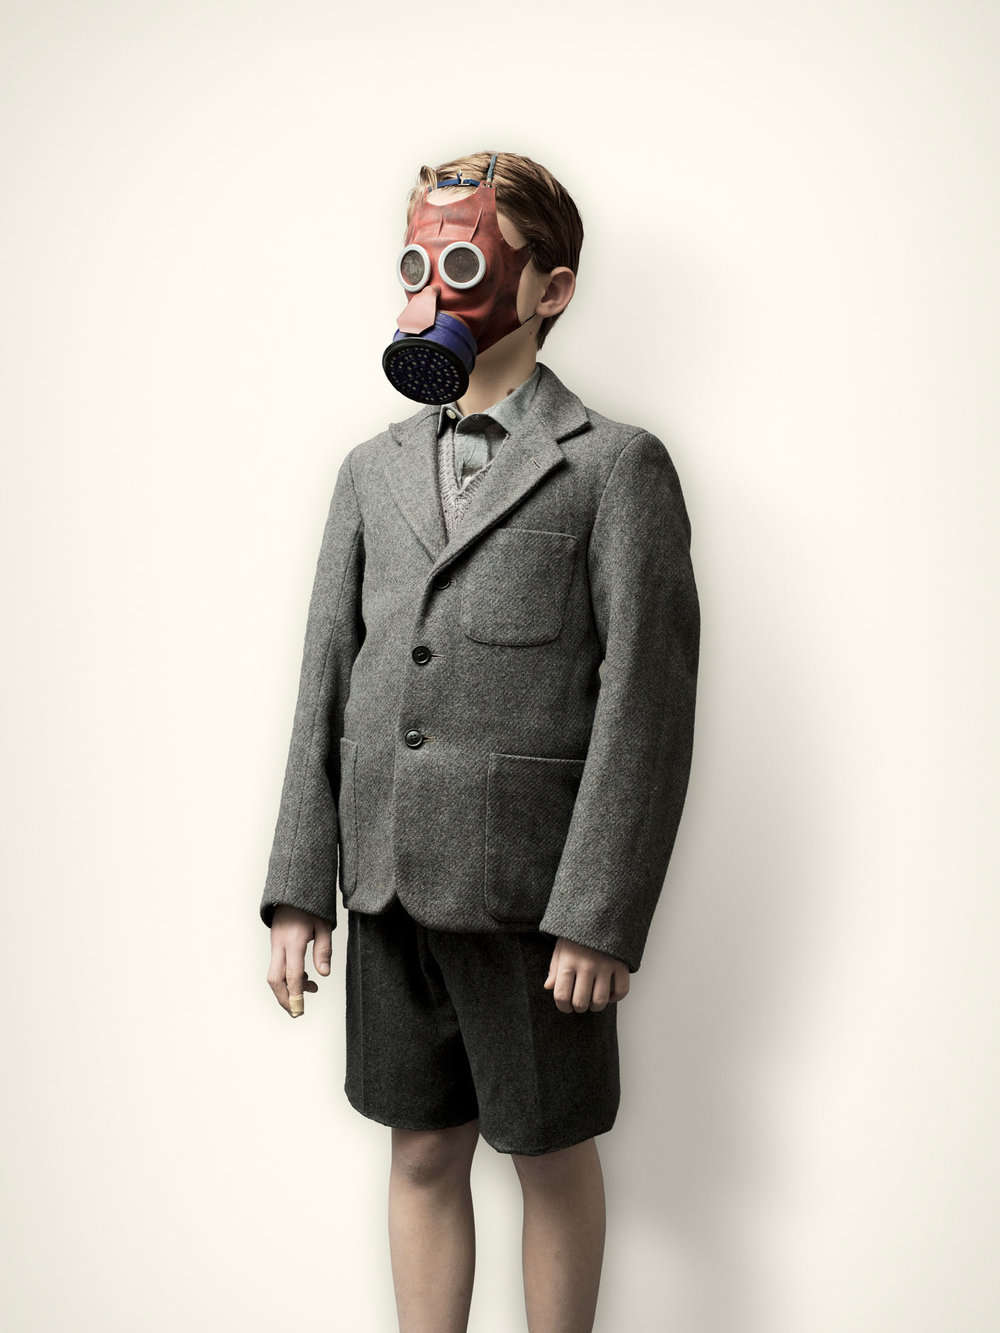 Evacuee with Micky Mouse Gas Mask (2008)